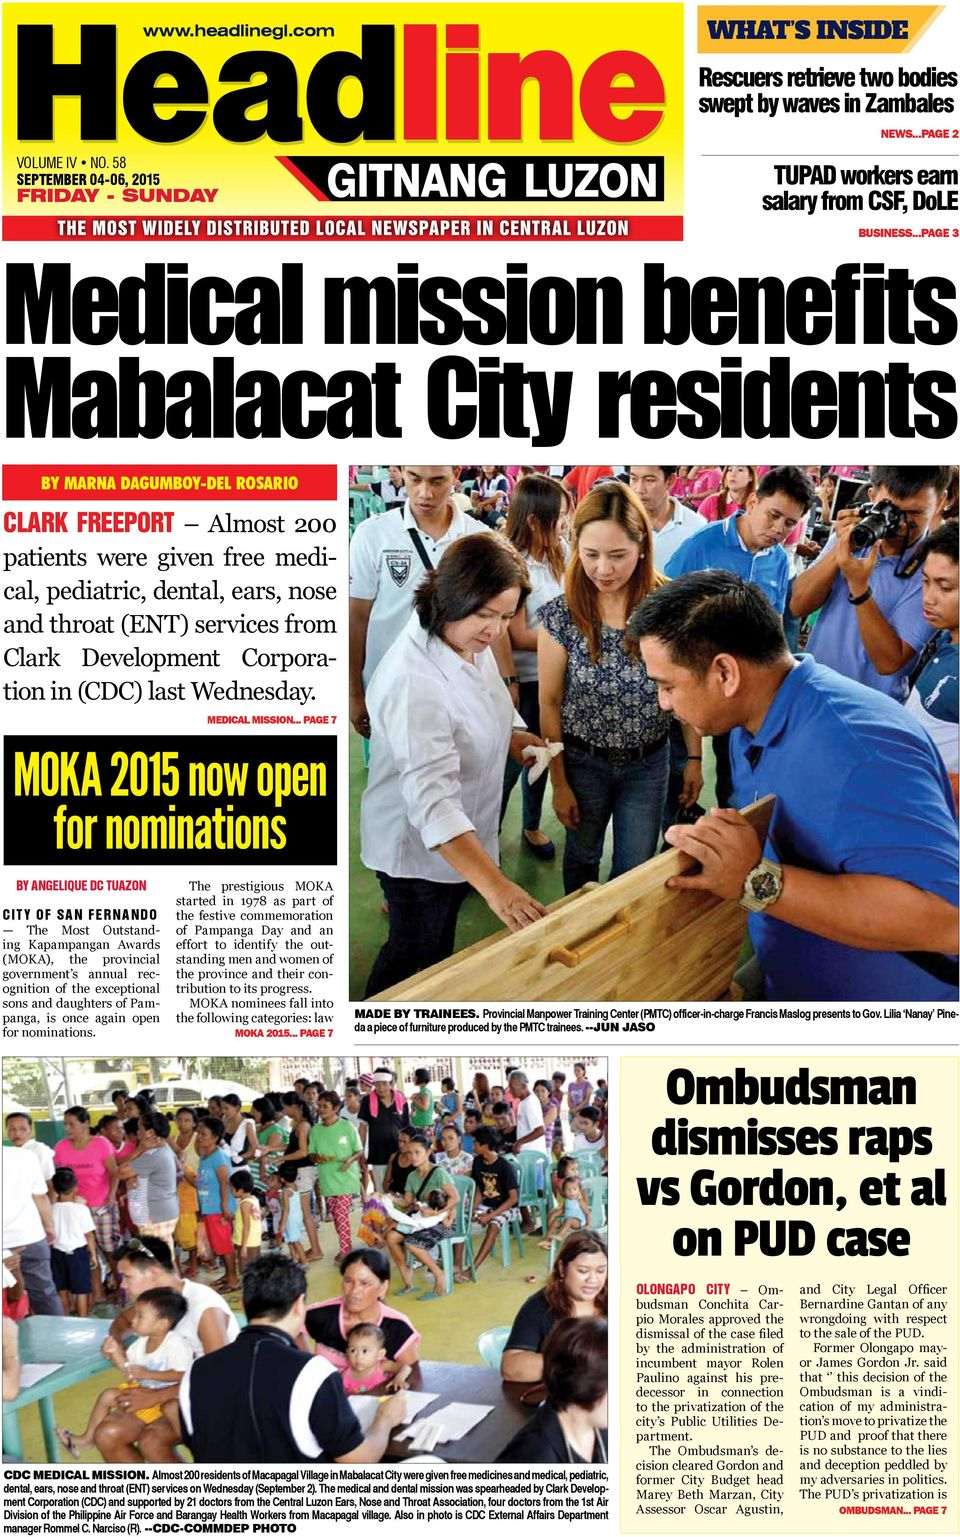 ..page 3 Medical mission benefits Mabalacat City residents By Marna Dagumboy-del Rosario CLARK FREEPORT Almost 200 patients were given free medical, pediatric, dental, ears, nose and throat (ENT)